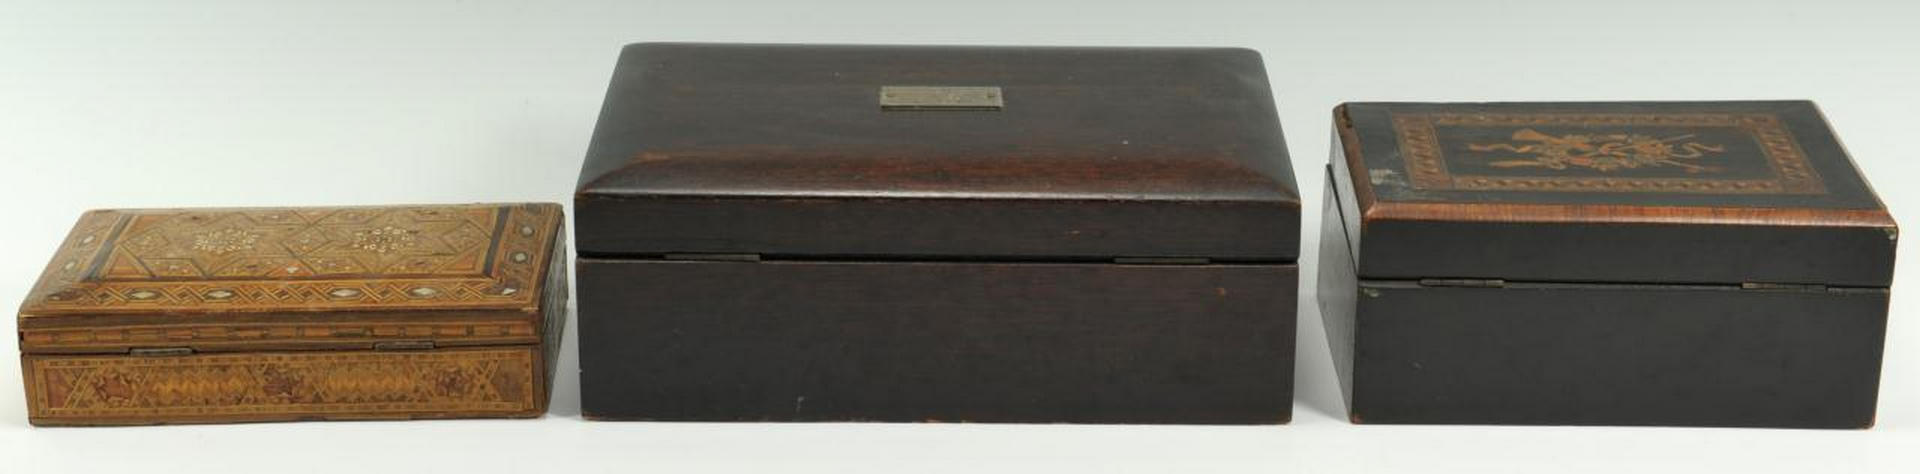 Lot 375: Humidor and Two Decorative Boxes